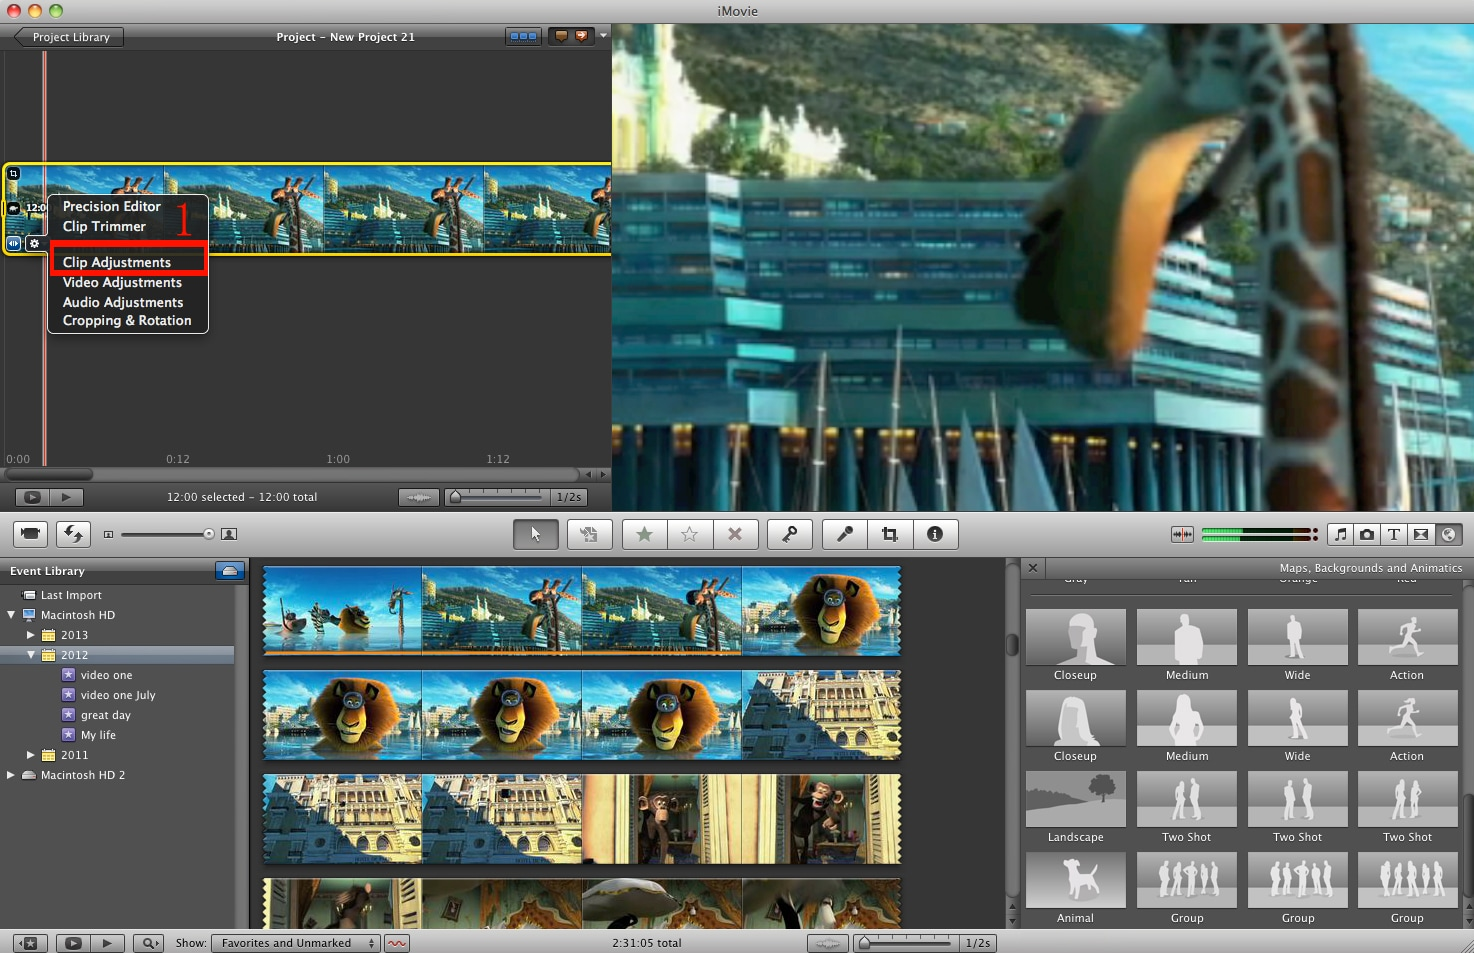 timelapse in imovie